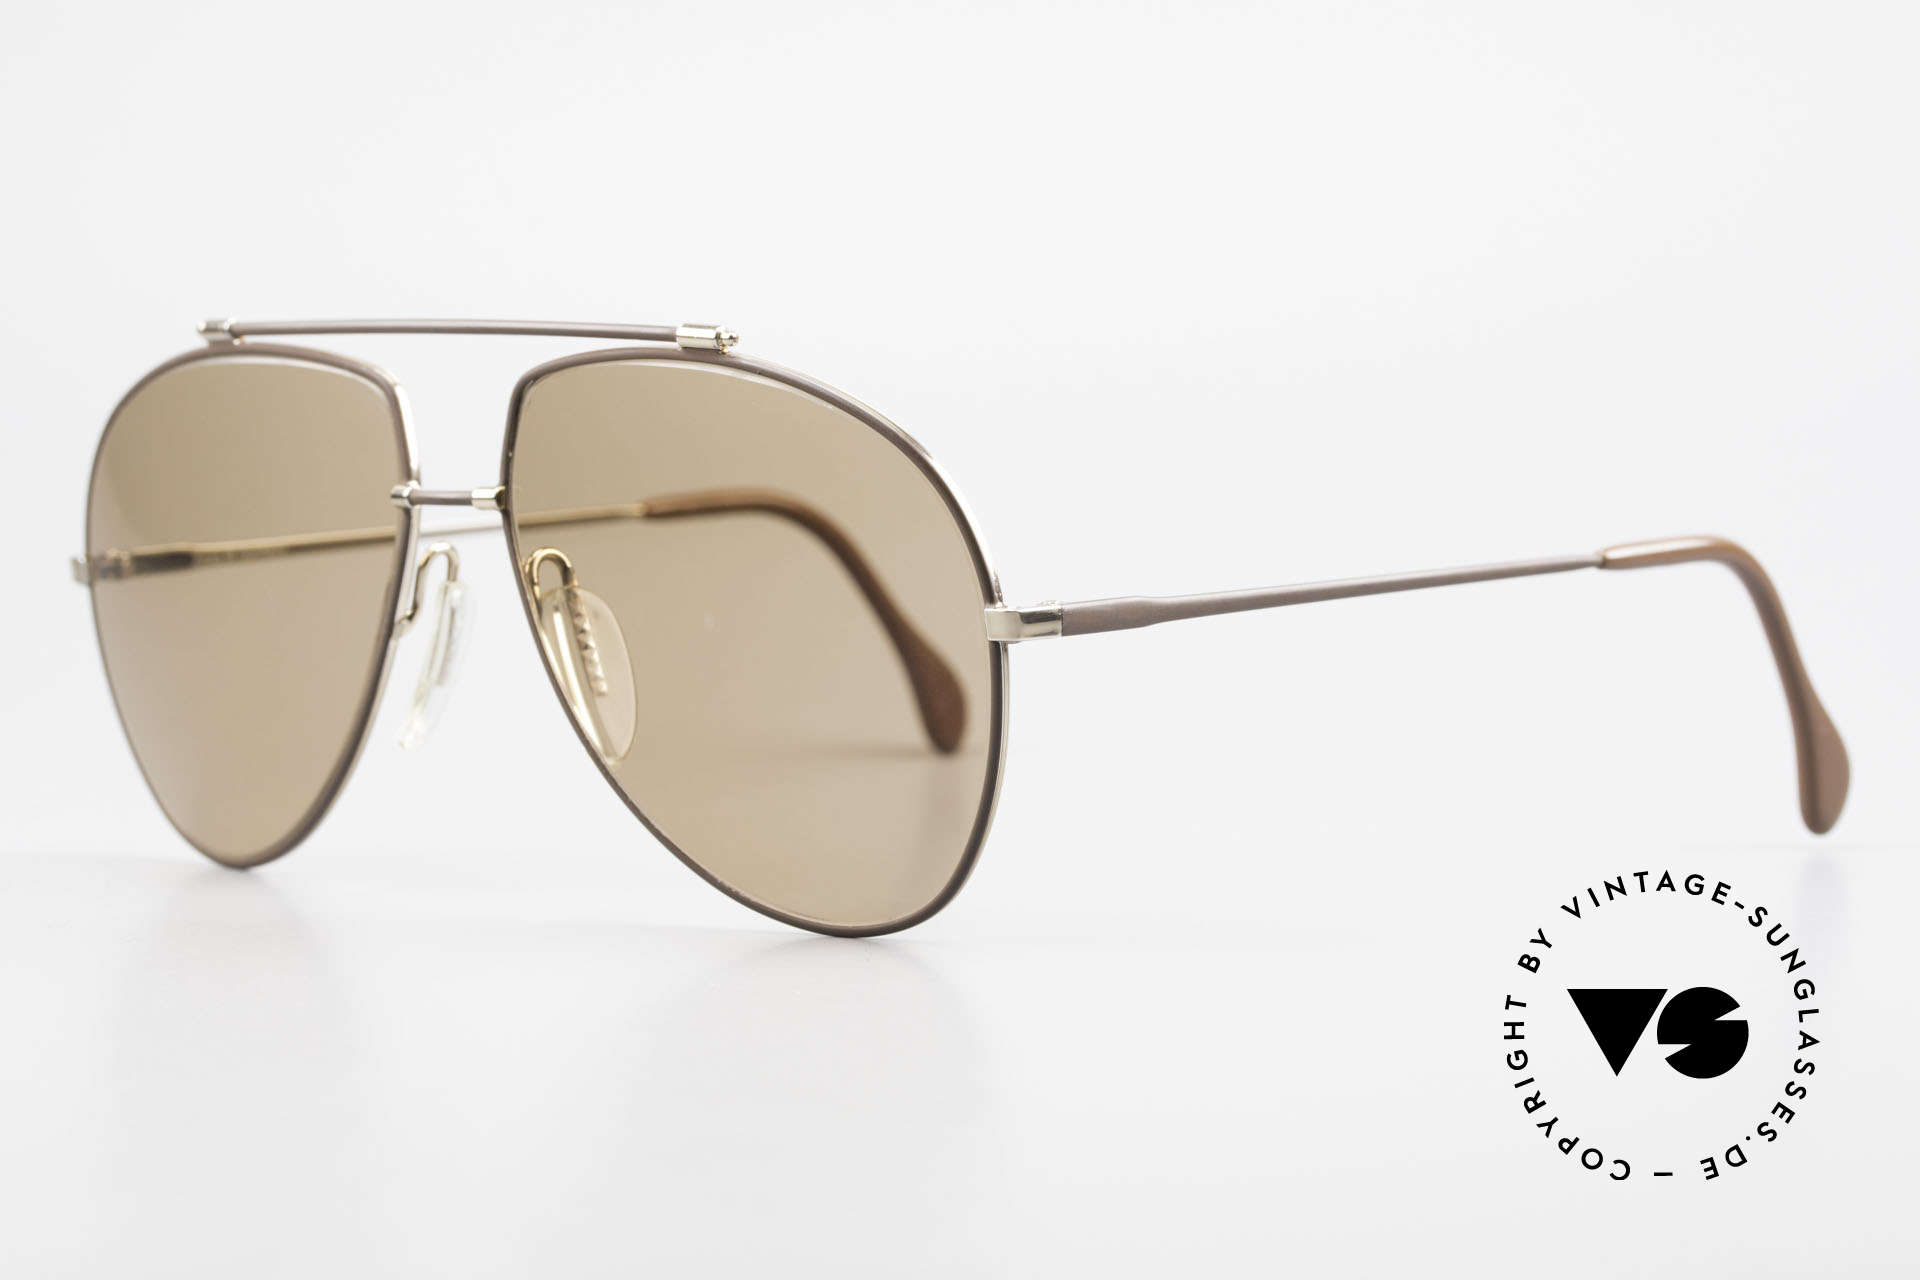 Zeiss 9371 Old 80's Quality Sunglasses, truly 'OLD SCHOOL' or 'VINTAGE'; pure eyewear history!, Made for Men